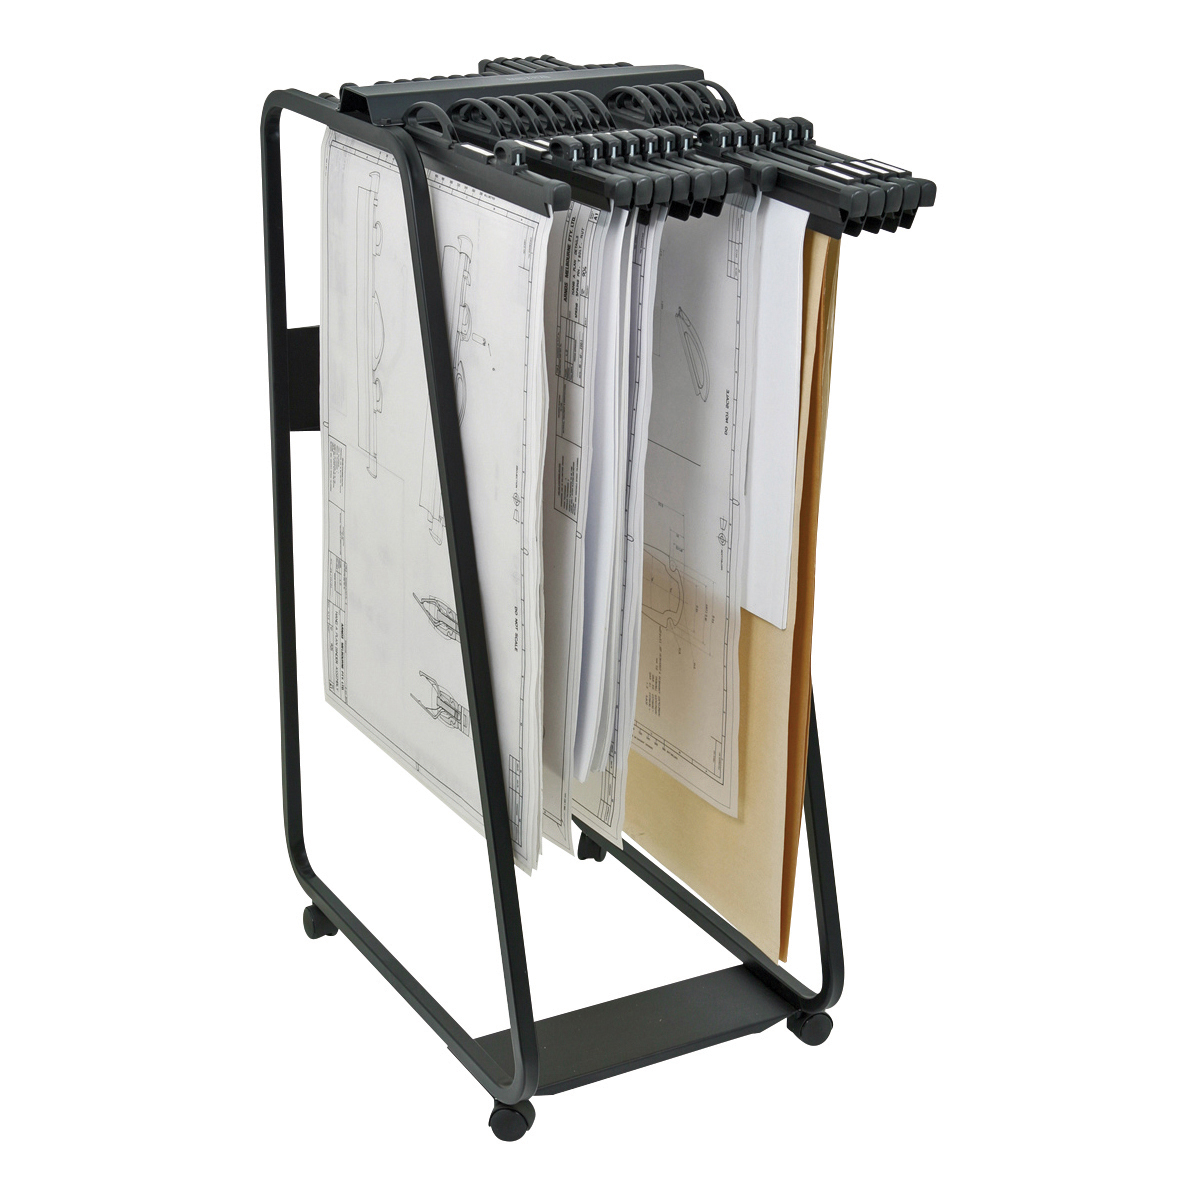 Drawing Holders & Accessories Arnos Hang-A-Plan General Front Load Trolley for Approx 20 Binders A0-A1-A2-B1 W550xD800xH1320mm Ref D060